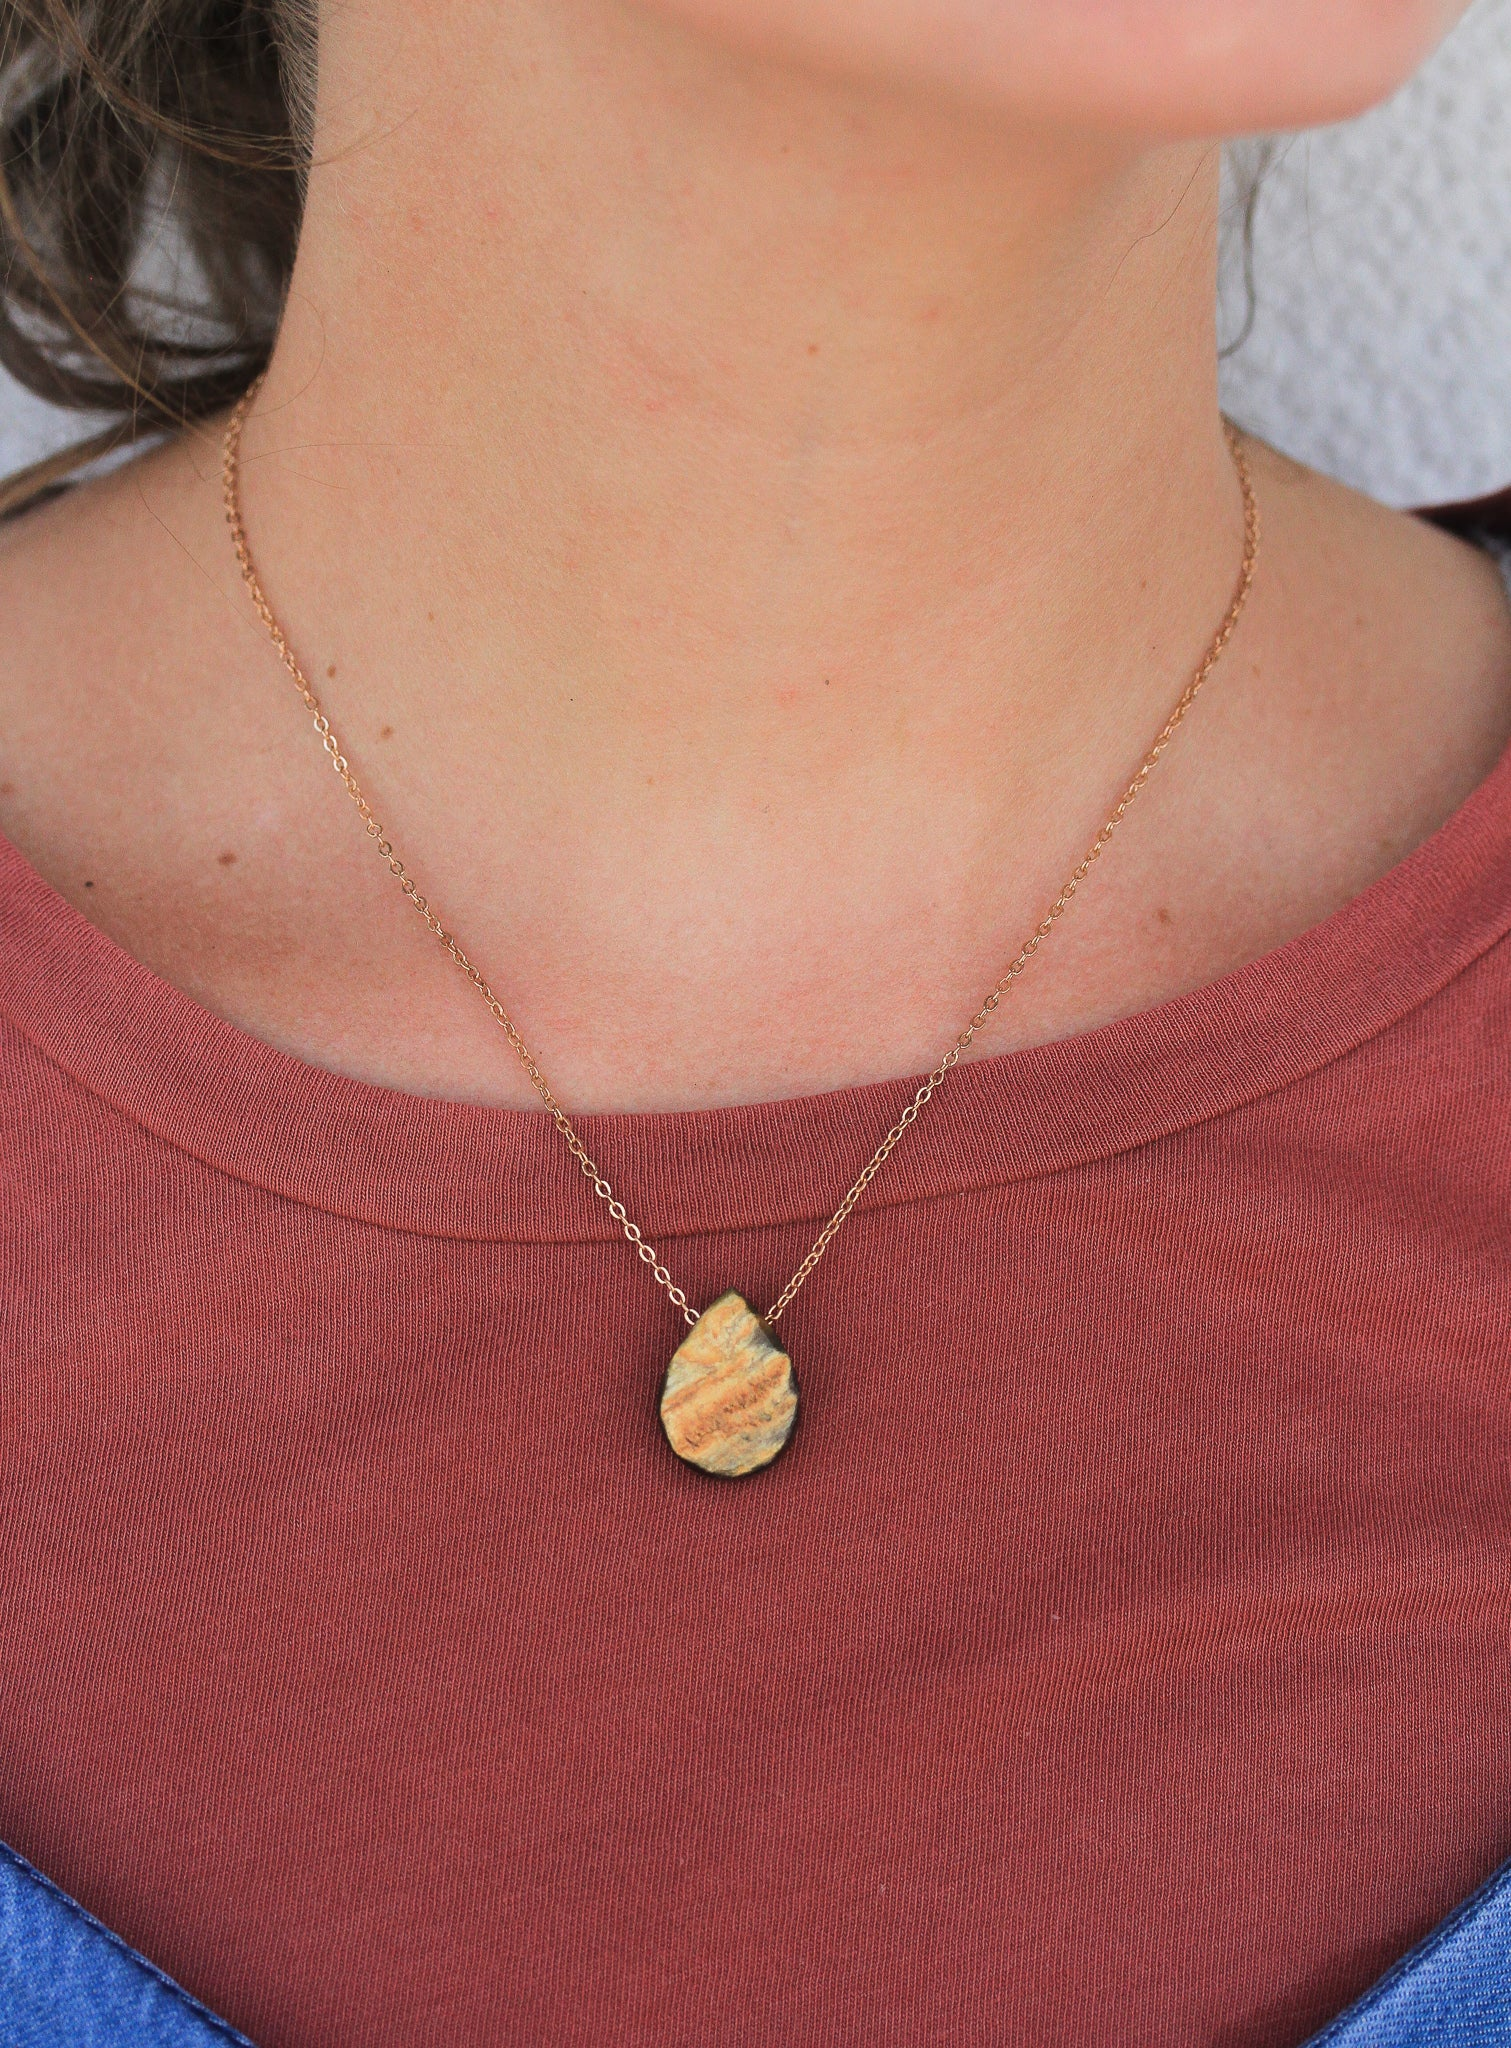 Teardrop Horn Necklace by Atelier Calla